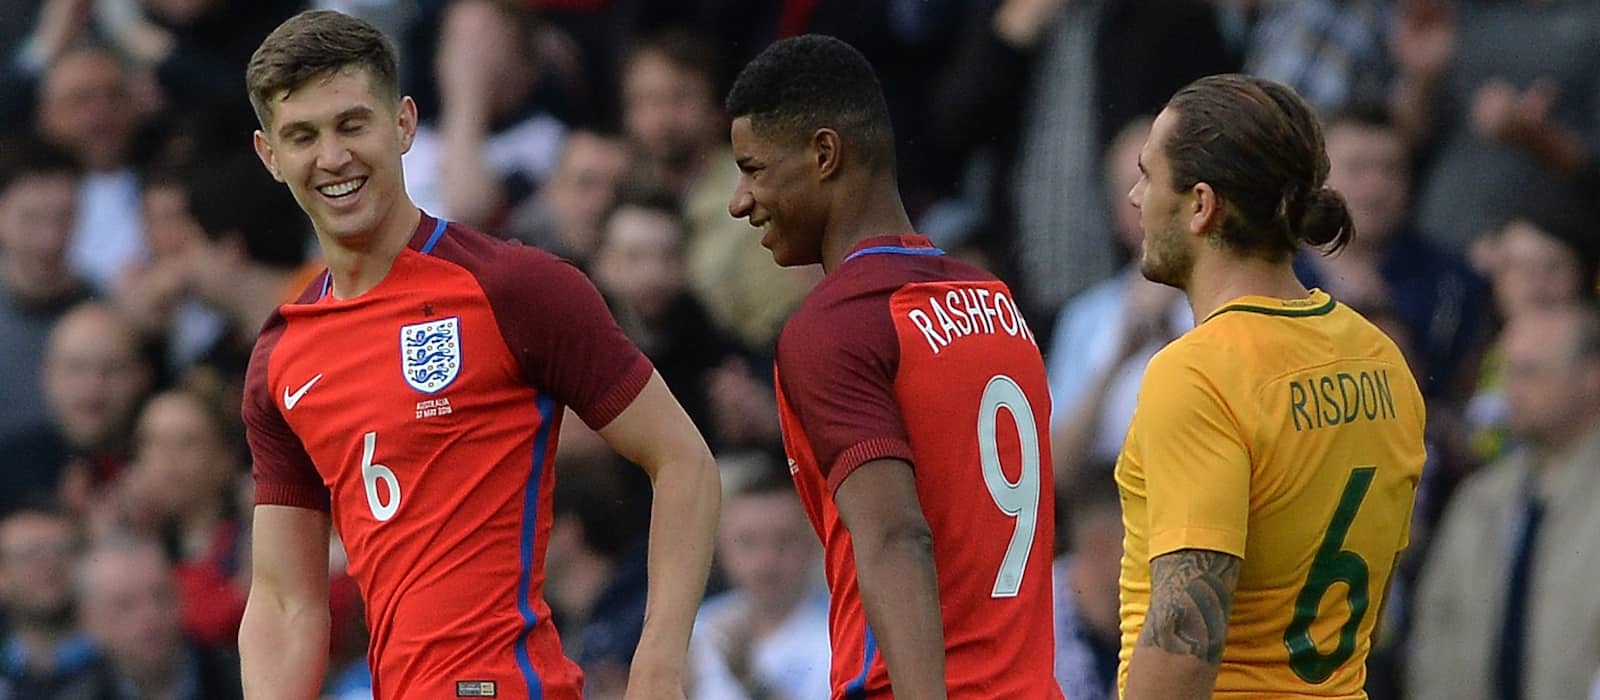 Video: Marcus Rashford's debut goal for England vs Australia